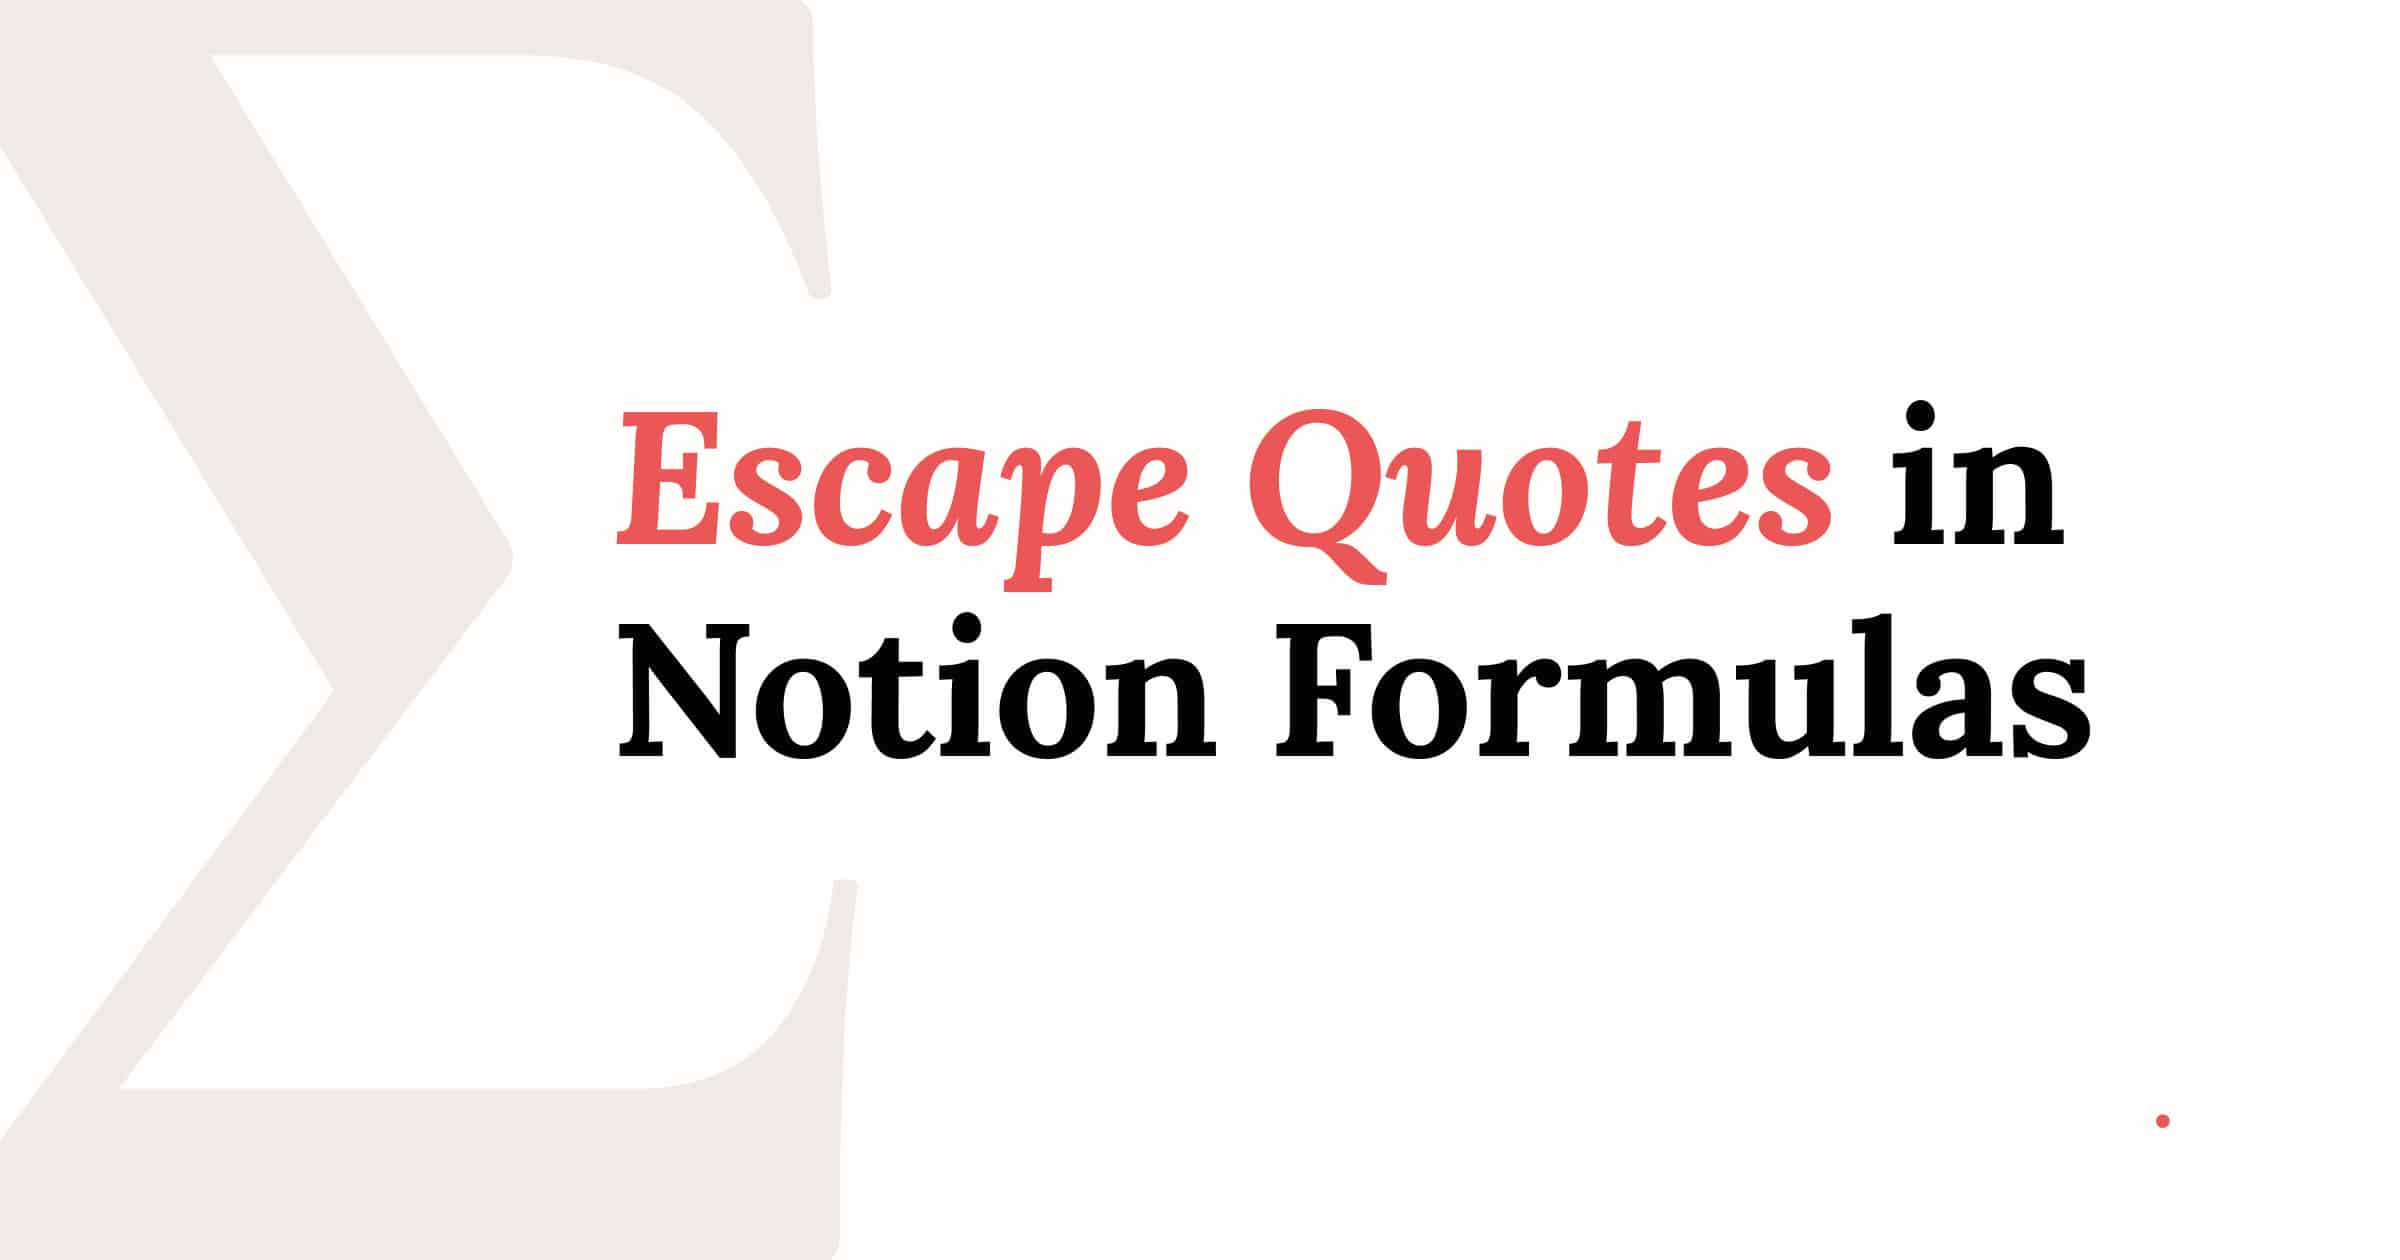 Escape Quotes in Notion Formulas